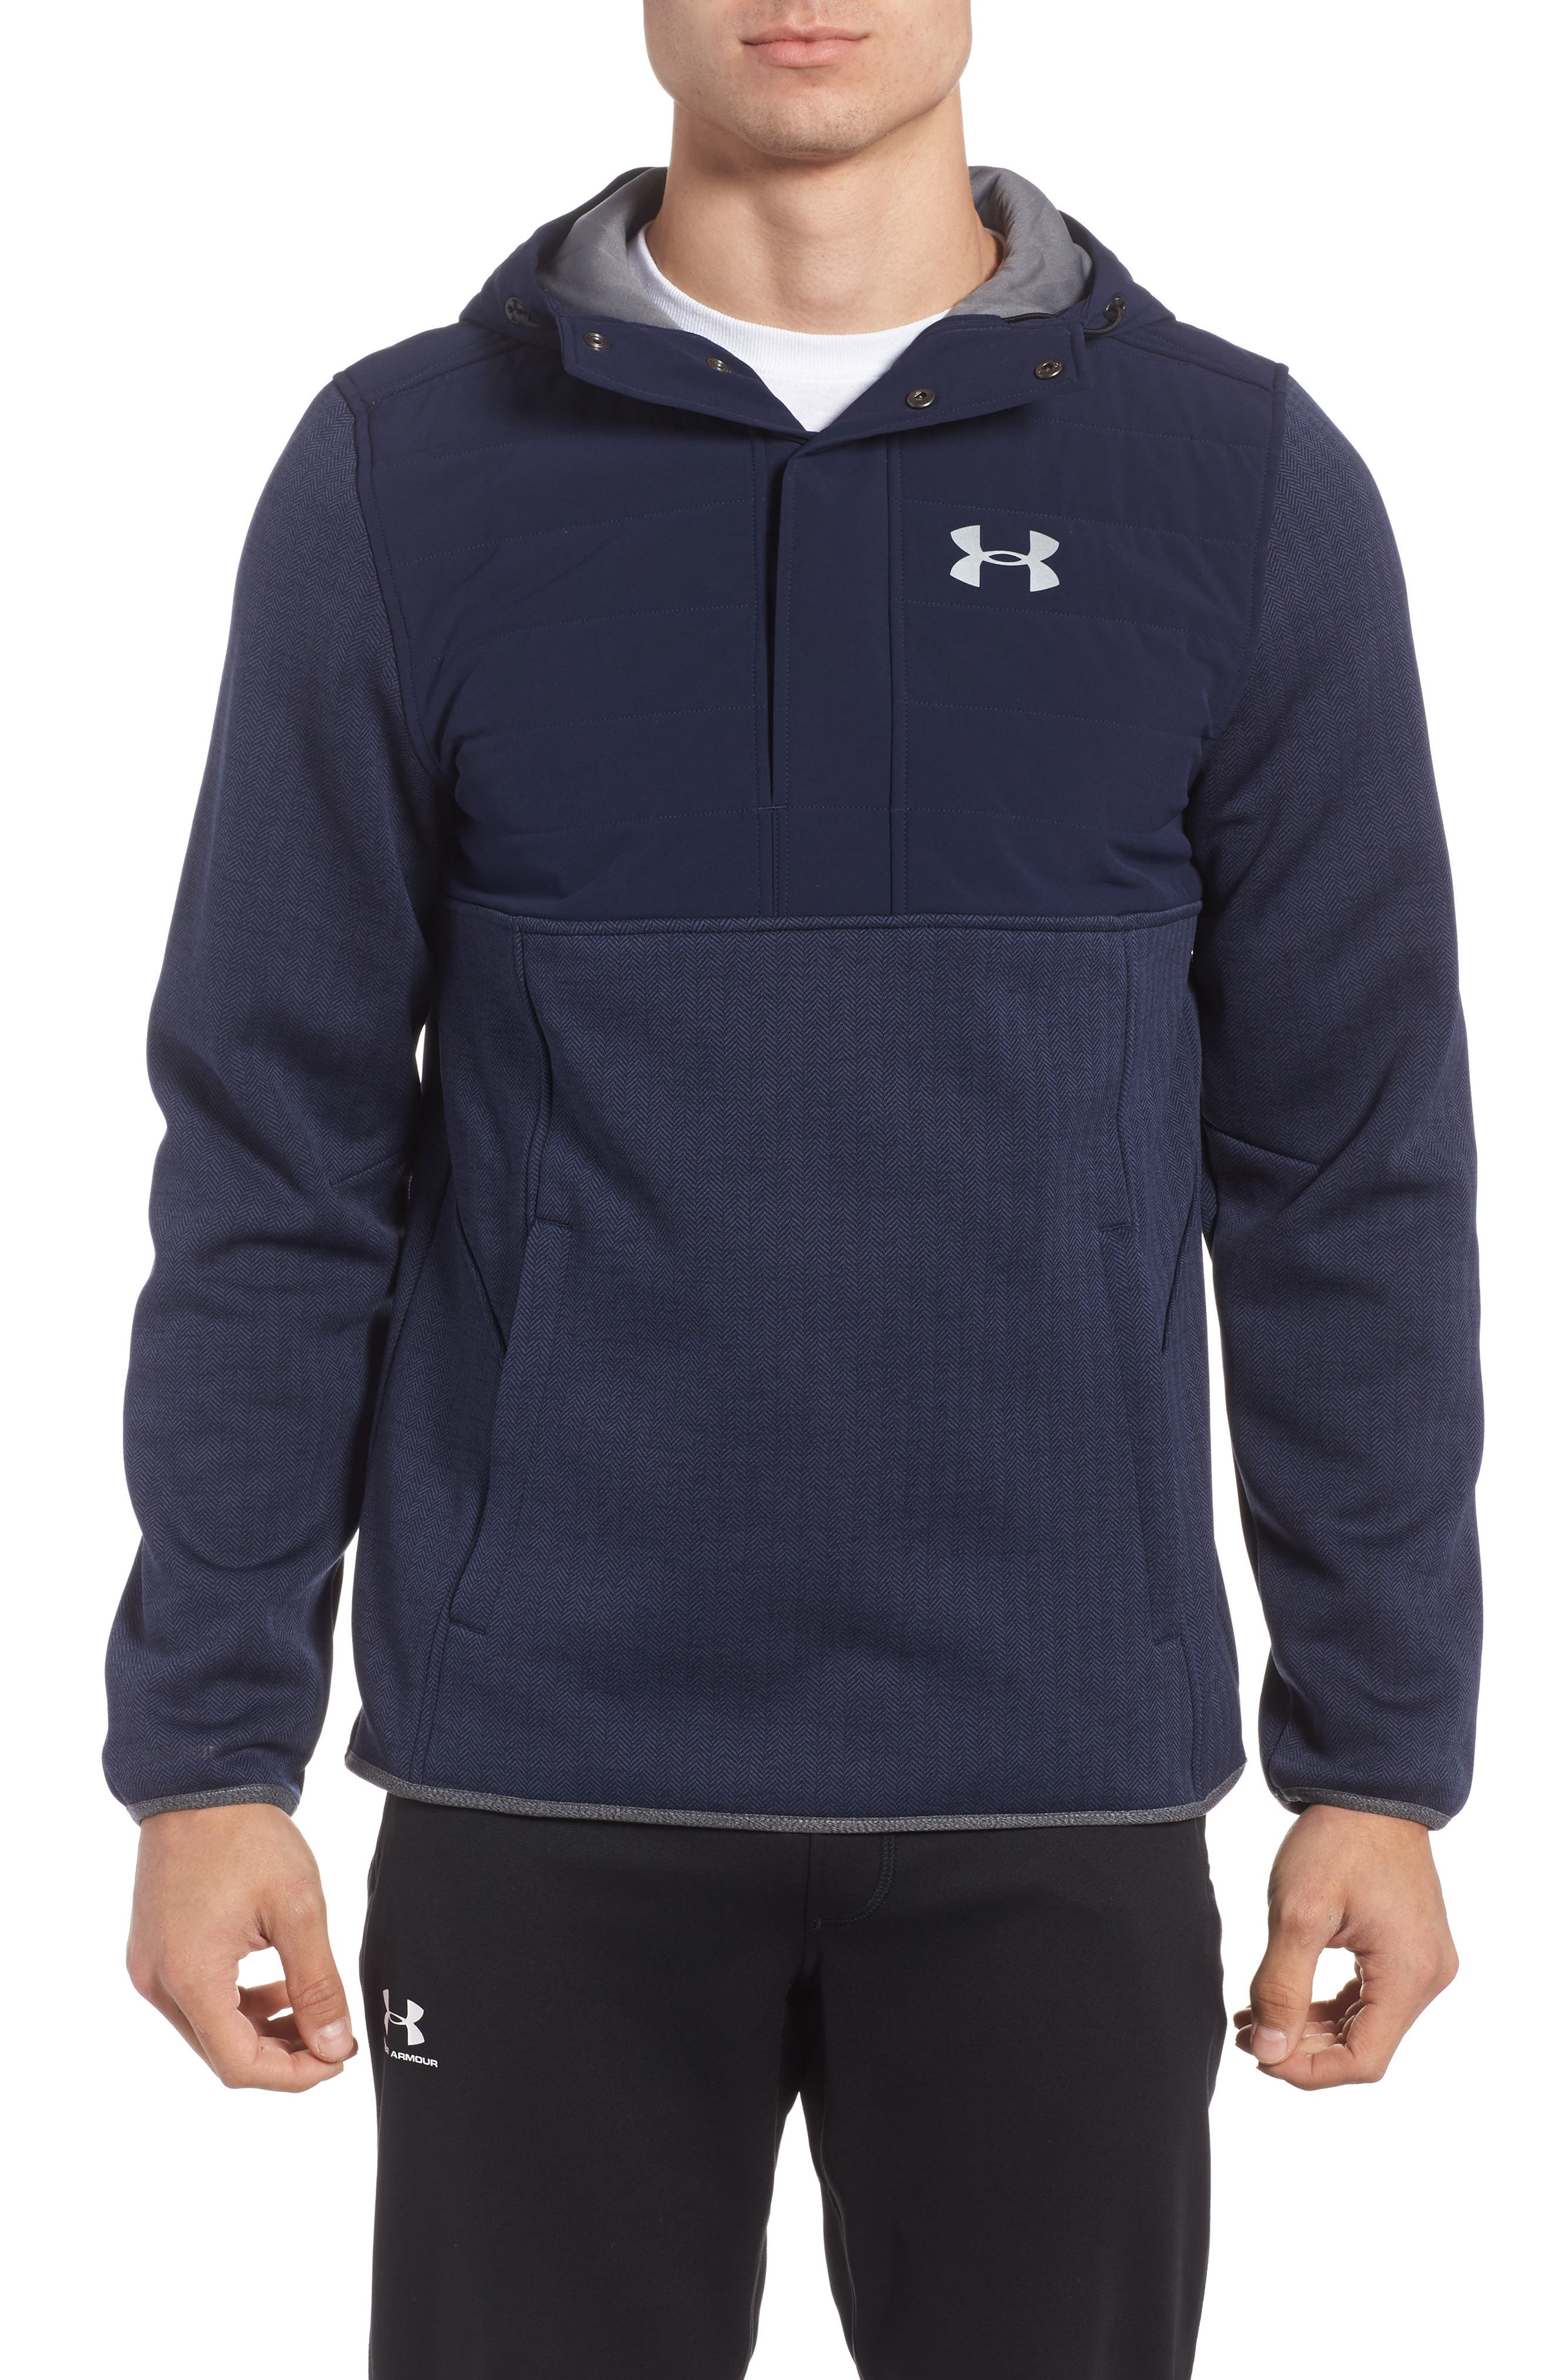 Henley Hoodie,                         Main,                         color, Midnight Navy / Reflective